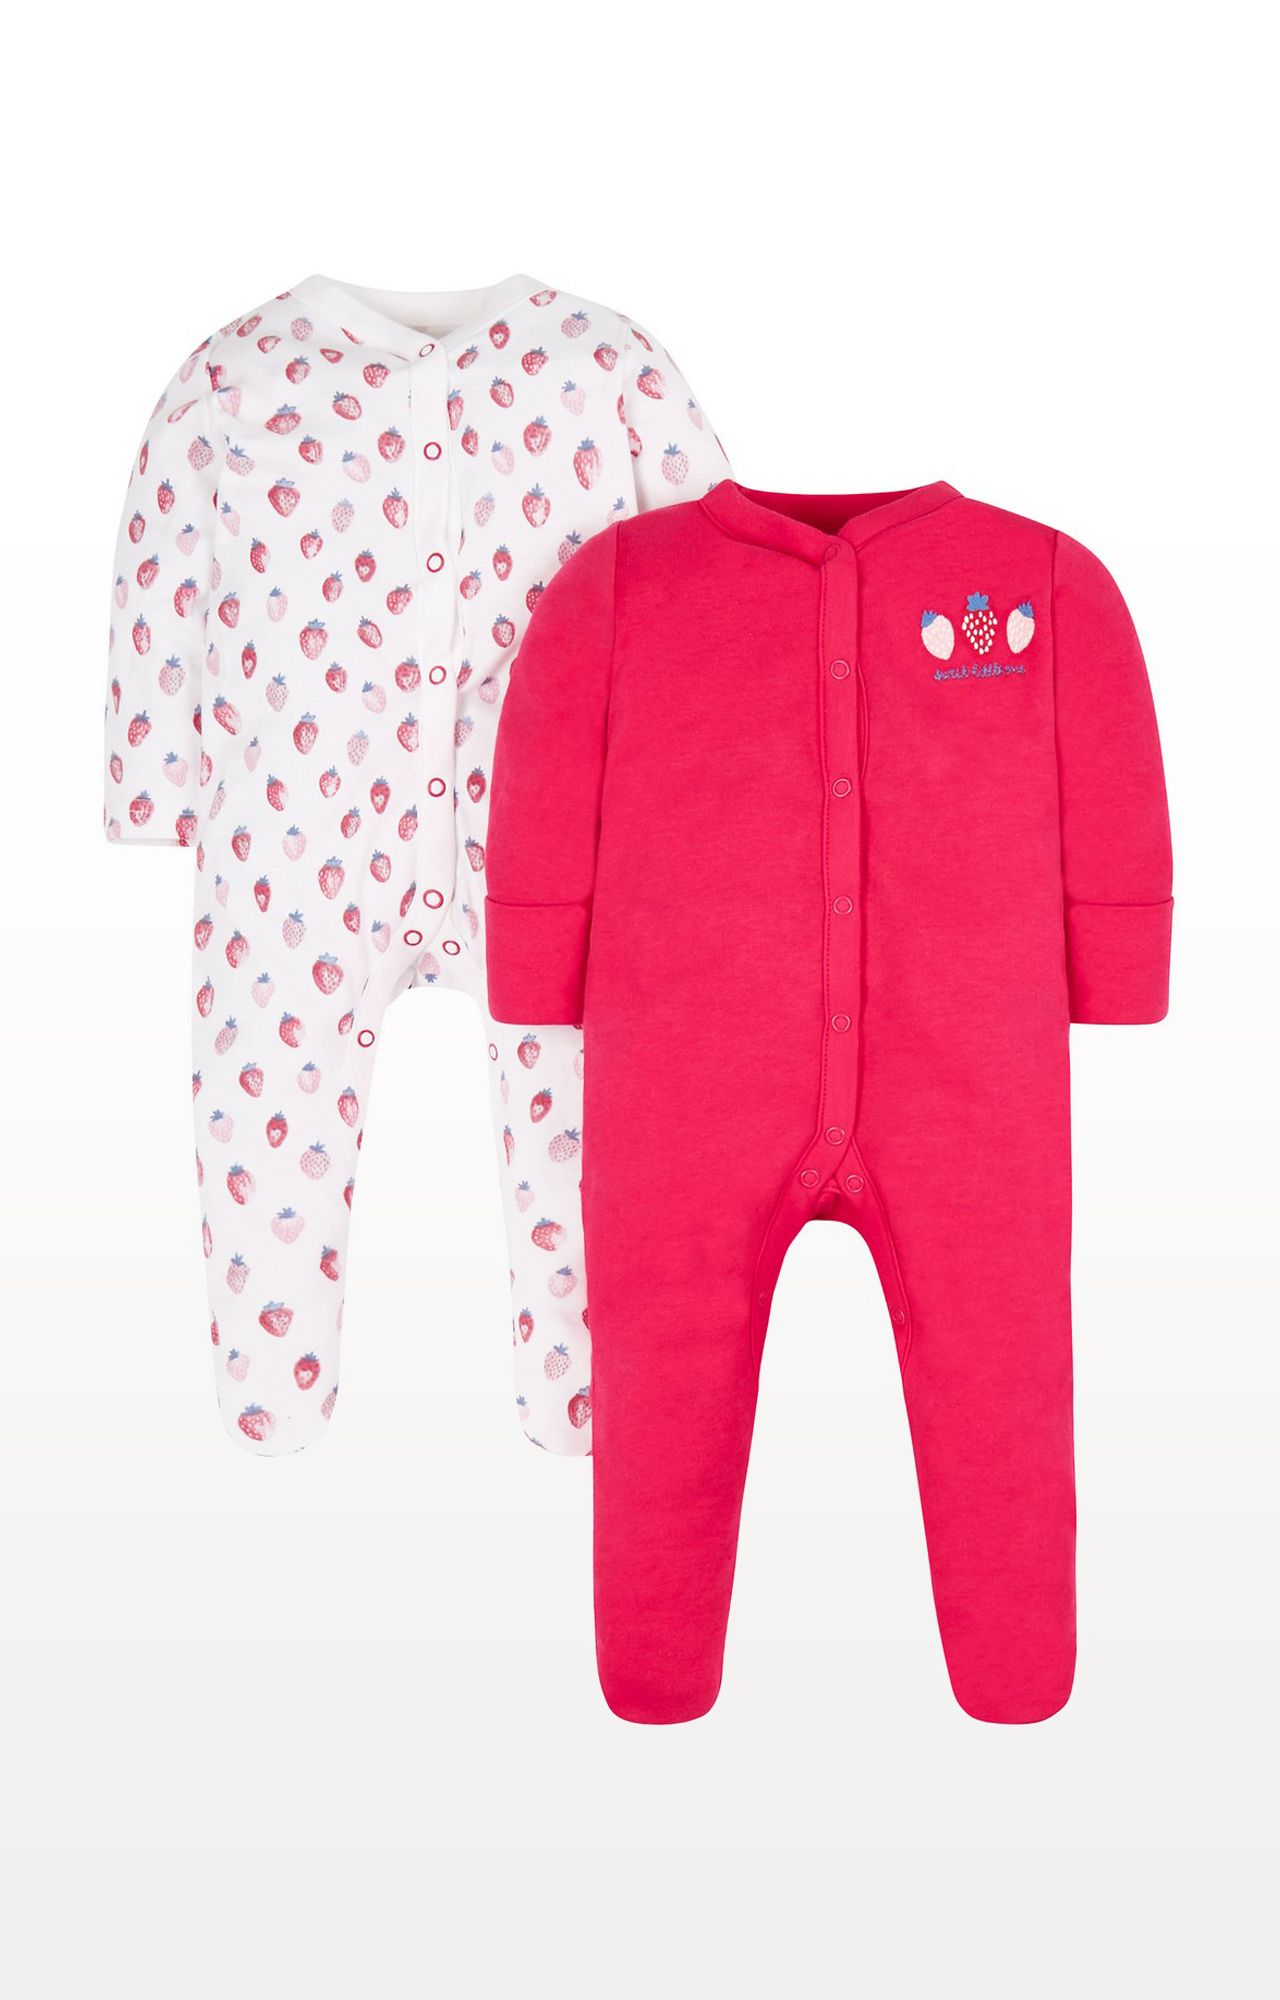 Mothercare | Pink Printed Strawberry Sleepsuits- Pack of 2